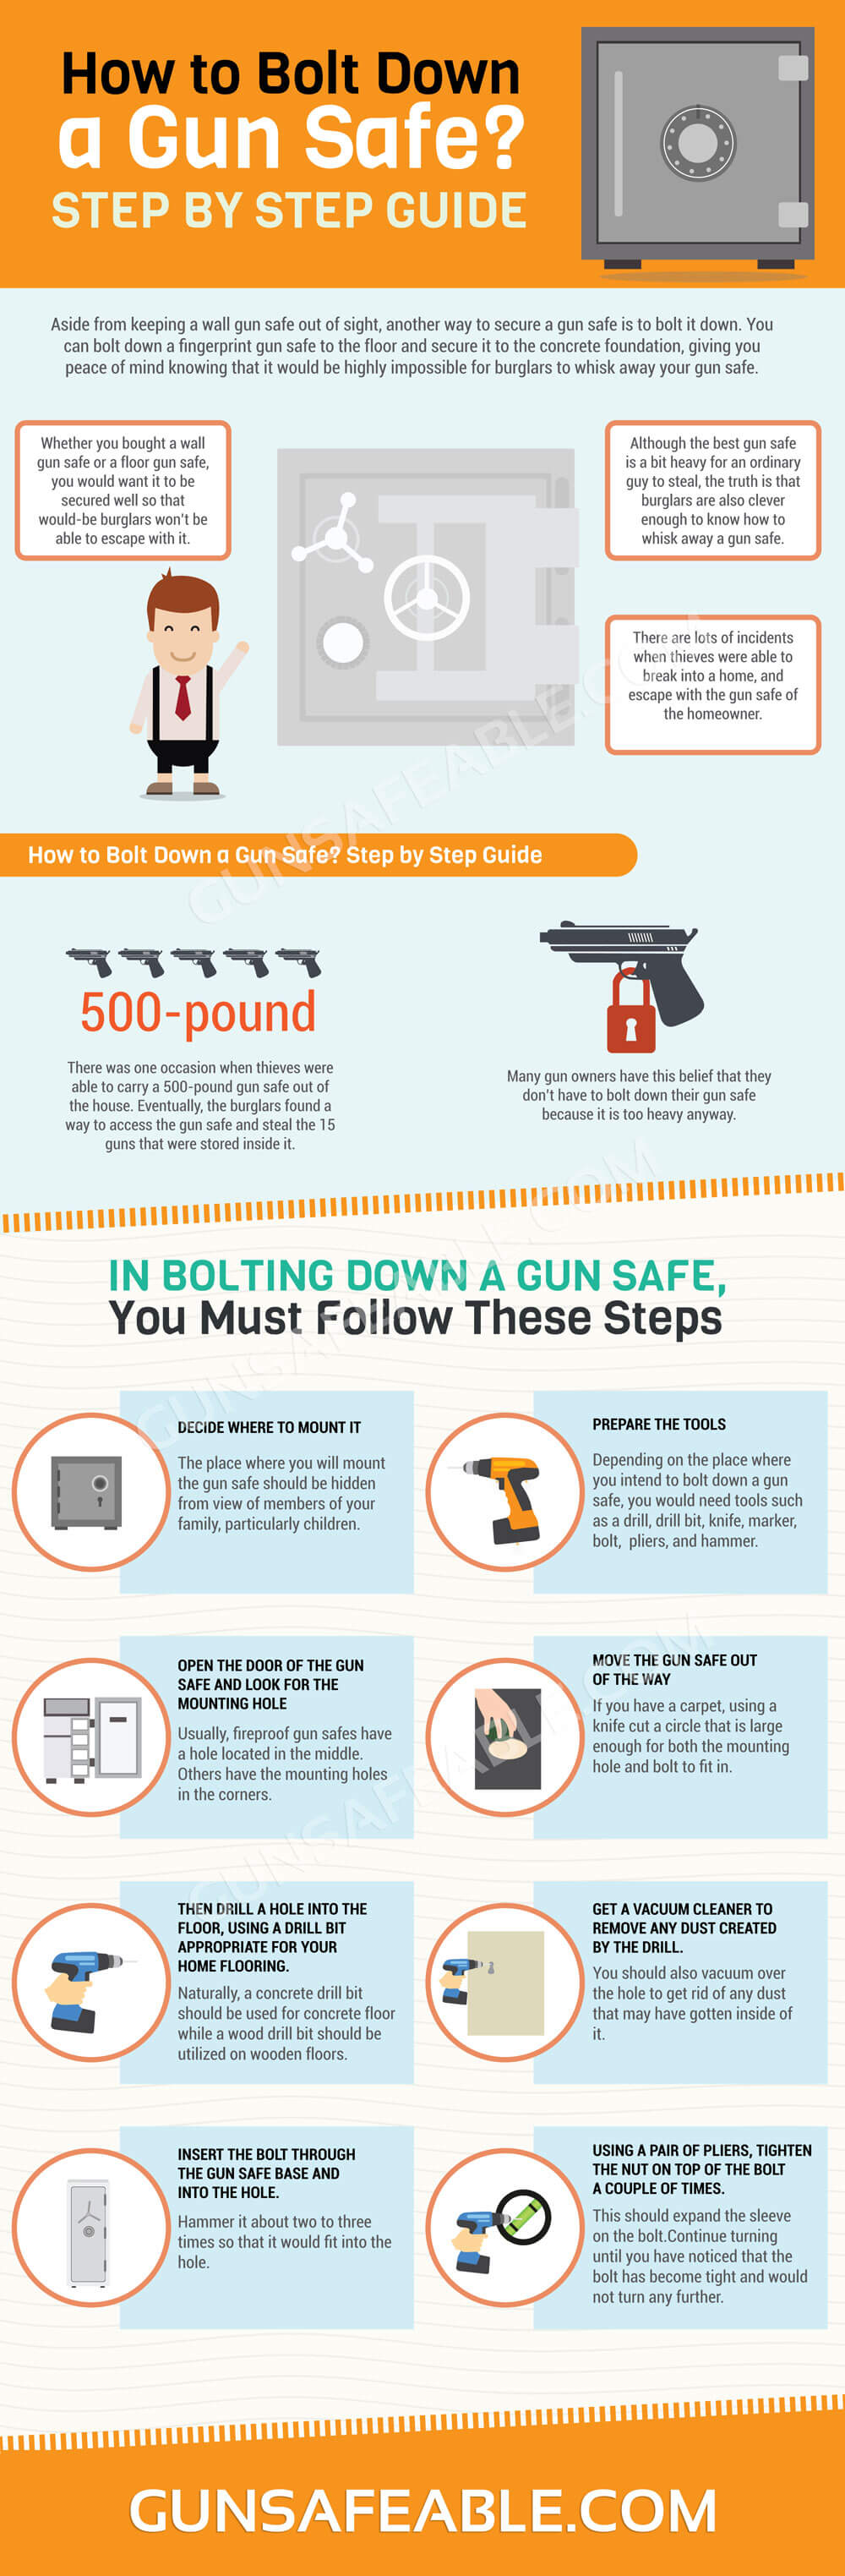 [INFOGRAPHIC] How to Bolt Down a Gun Safe? Step by Step Guide